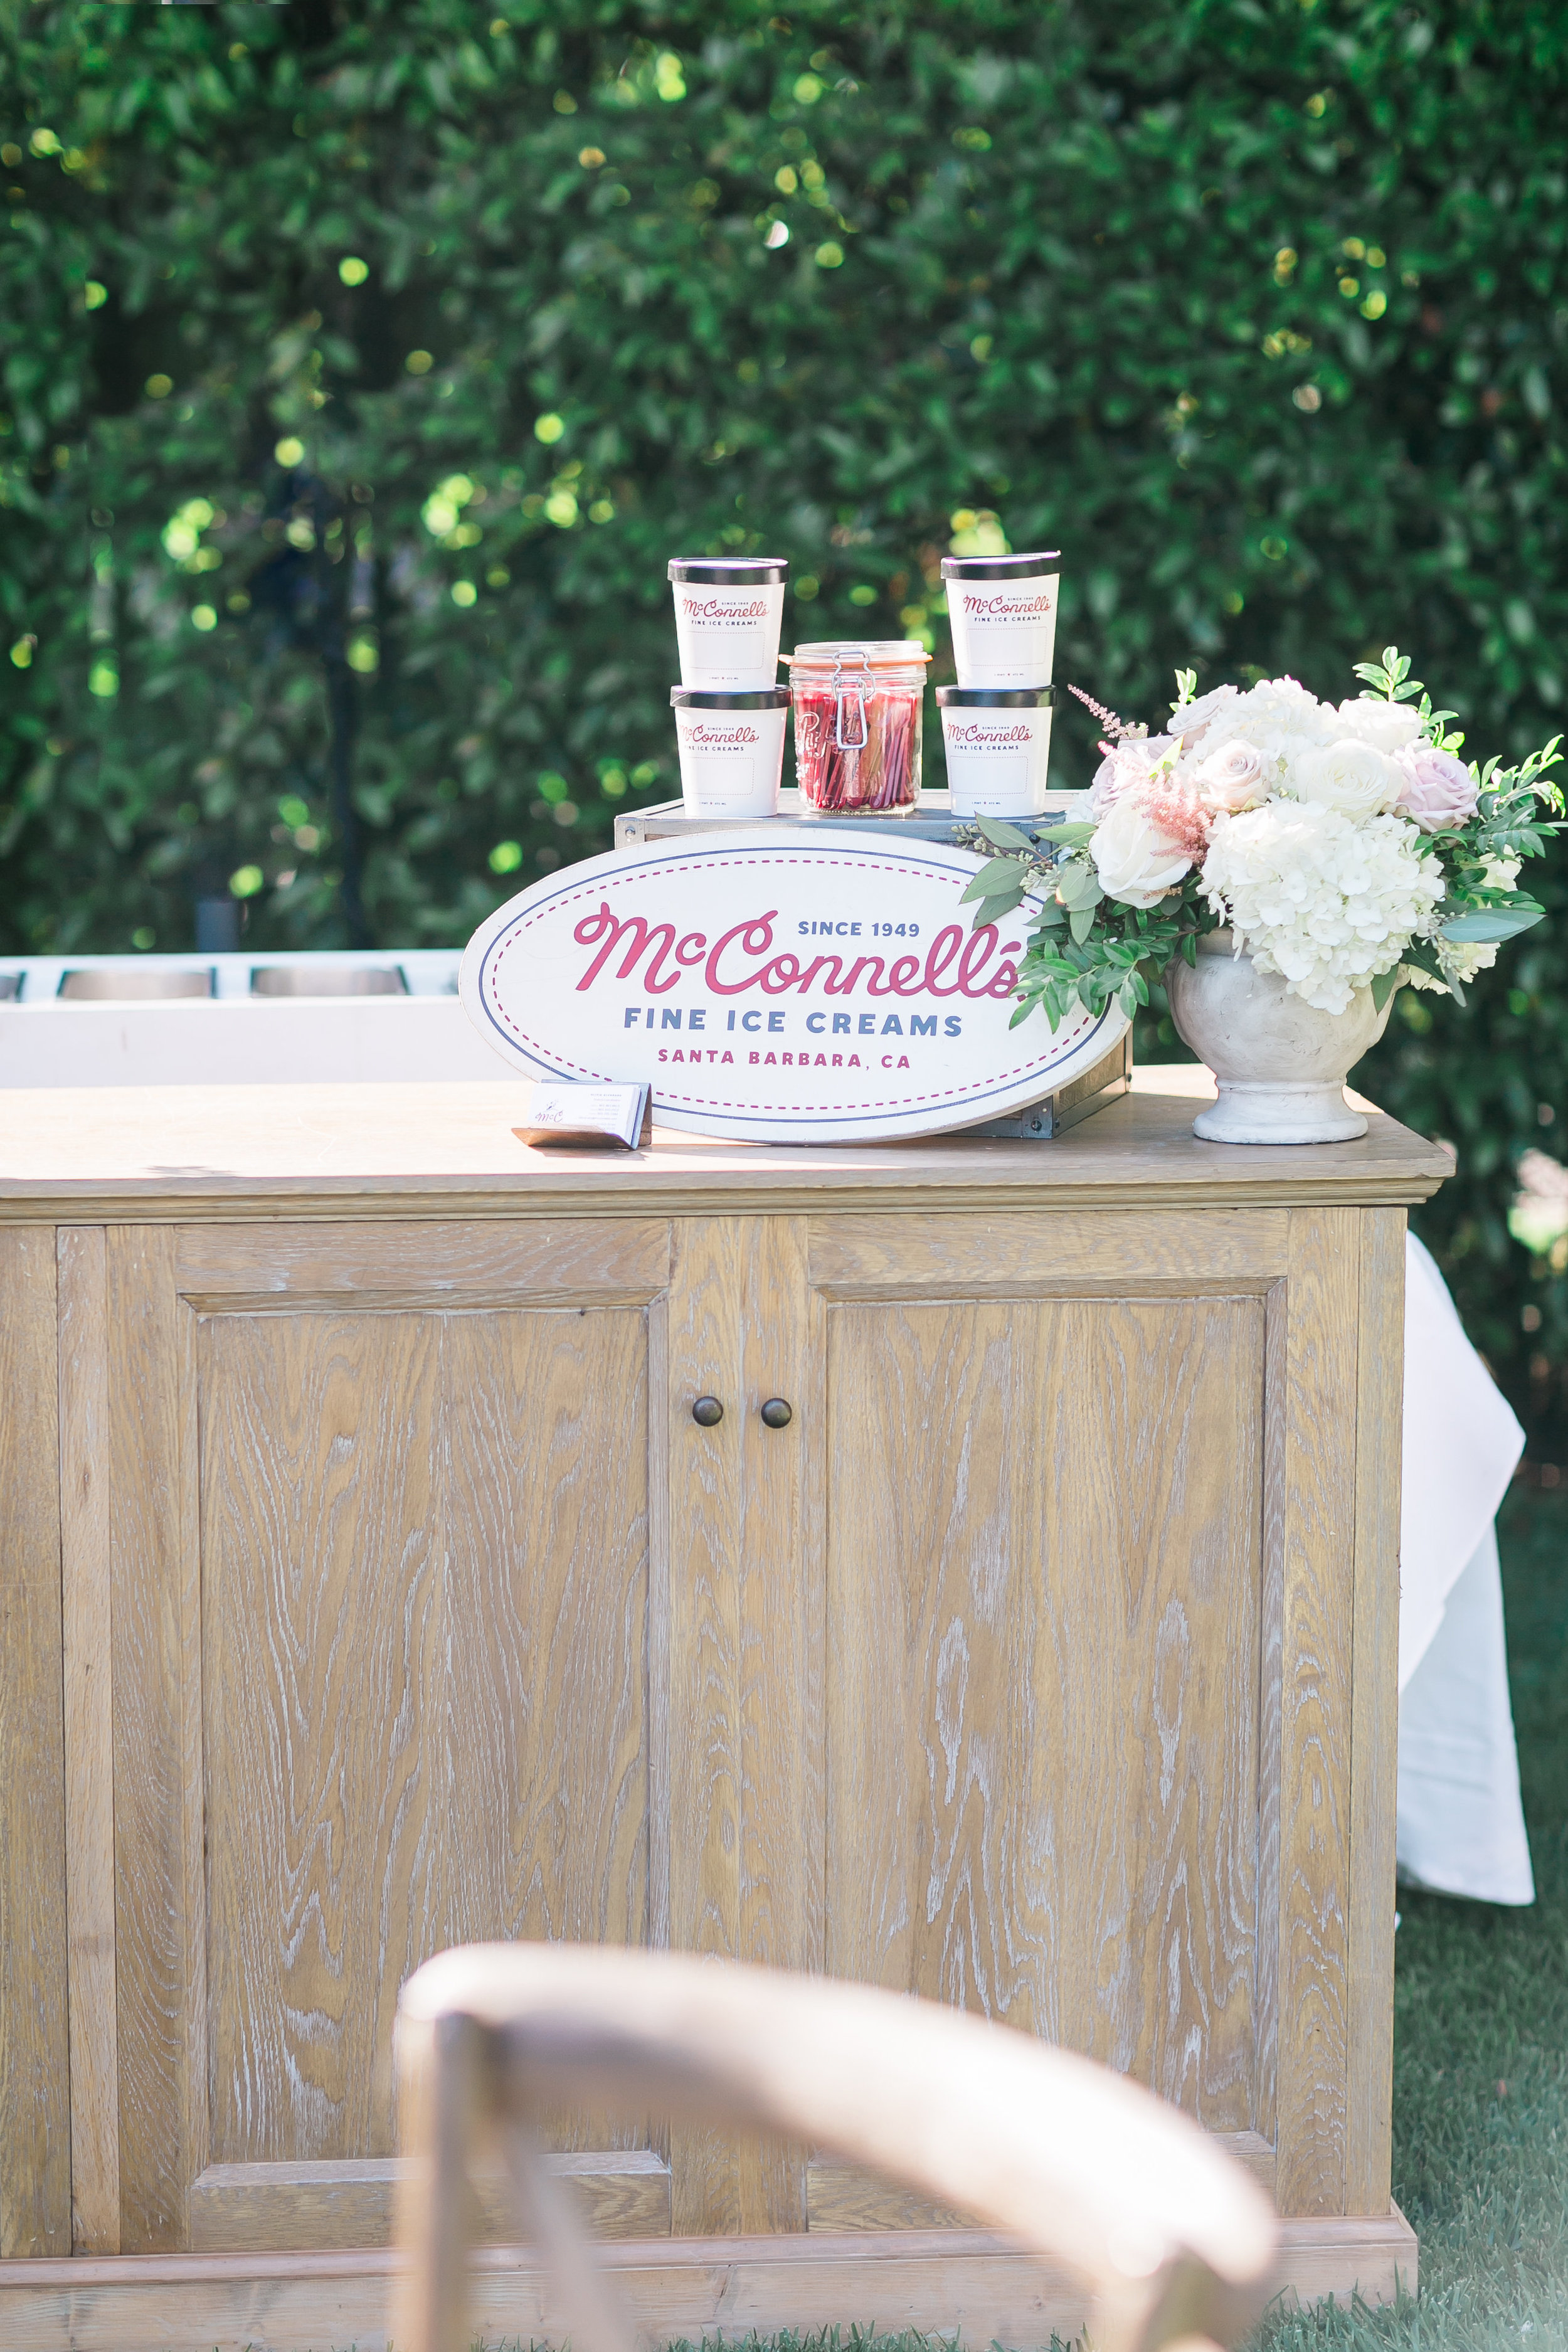 McConnell's Ice Cream Bar.    Destination Wedding Planner  ANDREA EPPOLITO EVENTS  · Images by  J.ANNE P  HOTOOGRAPHY  · Video  HOO FILMS  · Venue Ritz Carlton Bacara Santa Barbara ·Gown MONIQUE LHULLIER ·Bridesmaids Dresses  SHOW ME YOUR MUMU ·Stationery  SHE PAPERIE ·Bride's Shoes  BADGLEY MISCHKA ·Hair and Makeup  TEAM HAIR AND MAKEUP · Floral  BLUE MAGNOLIA ·Linen  LA TAVOLA ·Decor Rentals  TENT MERCHANT ·Calligraphy  EBB ·Lighting  FIVE STAR AV ·Ice Cream Station  MCCONNELL'S ICE CREAM